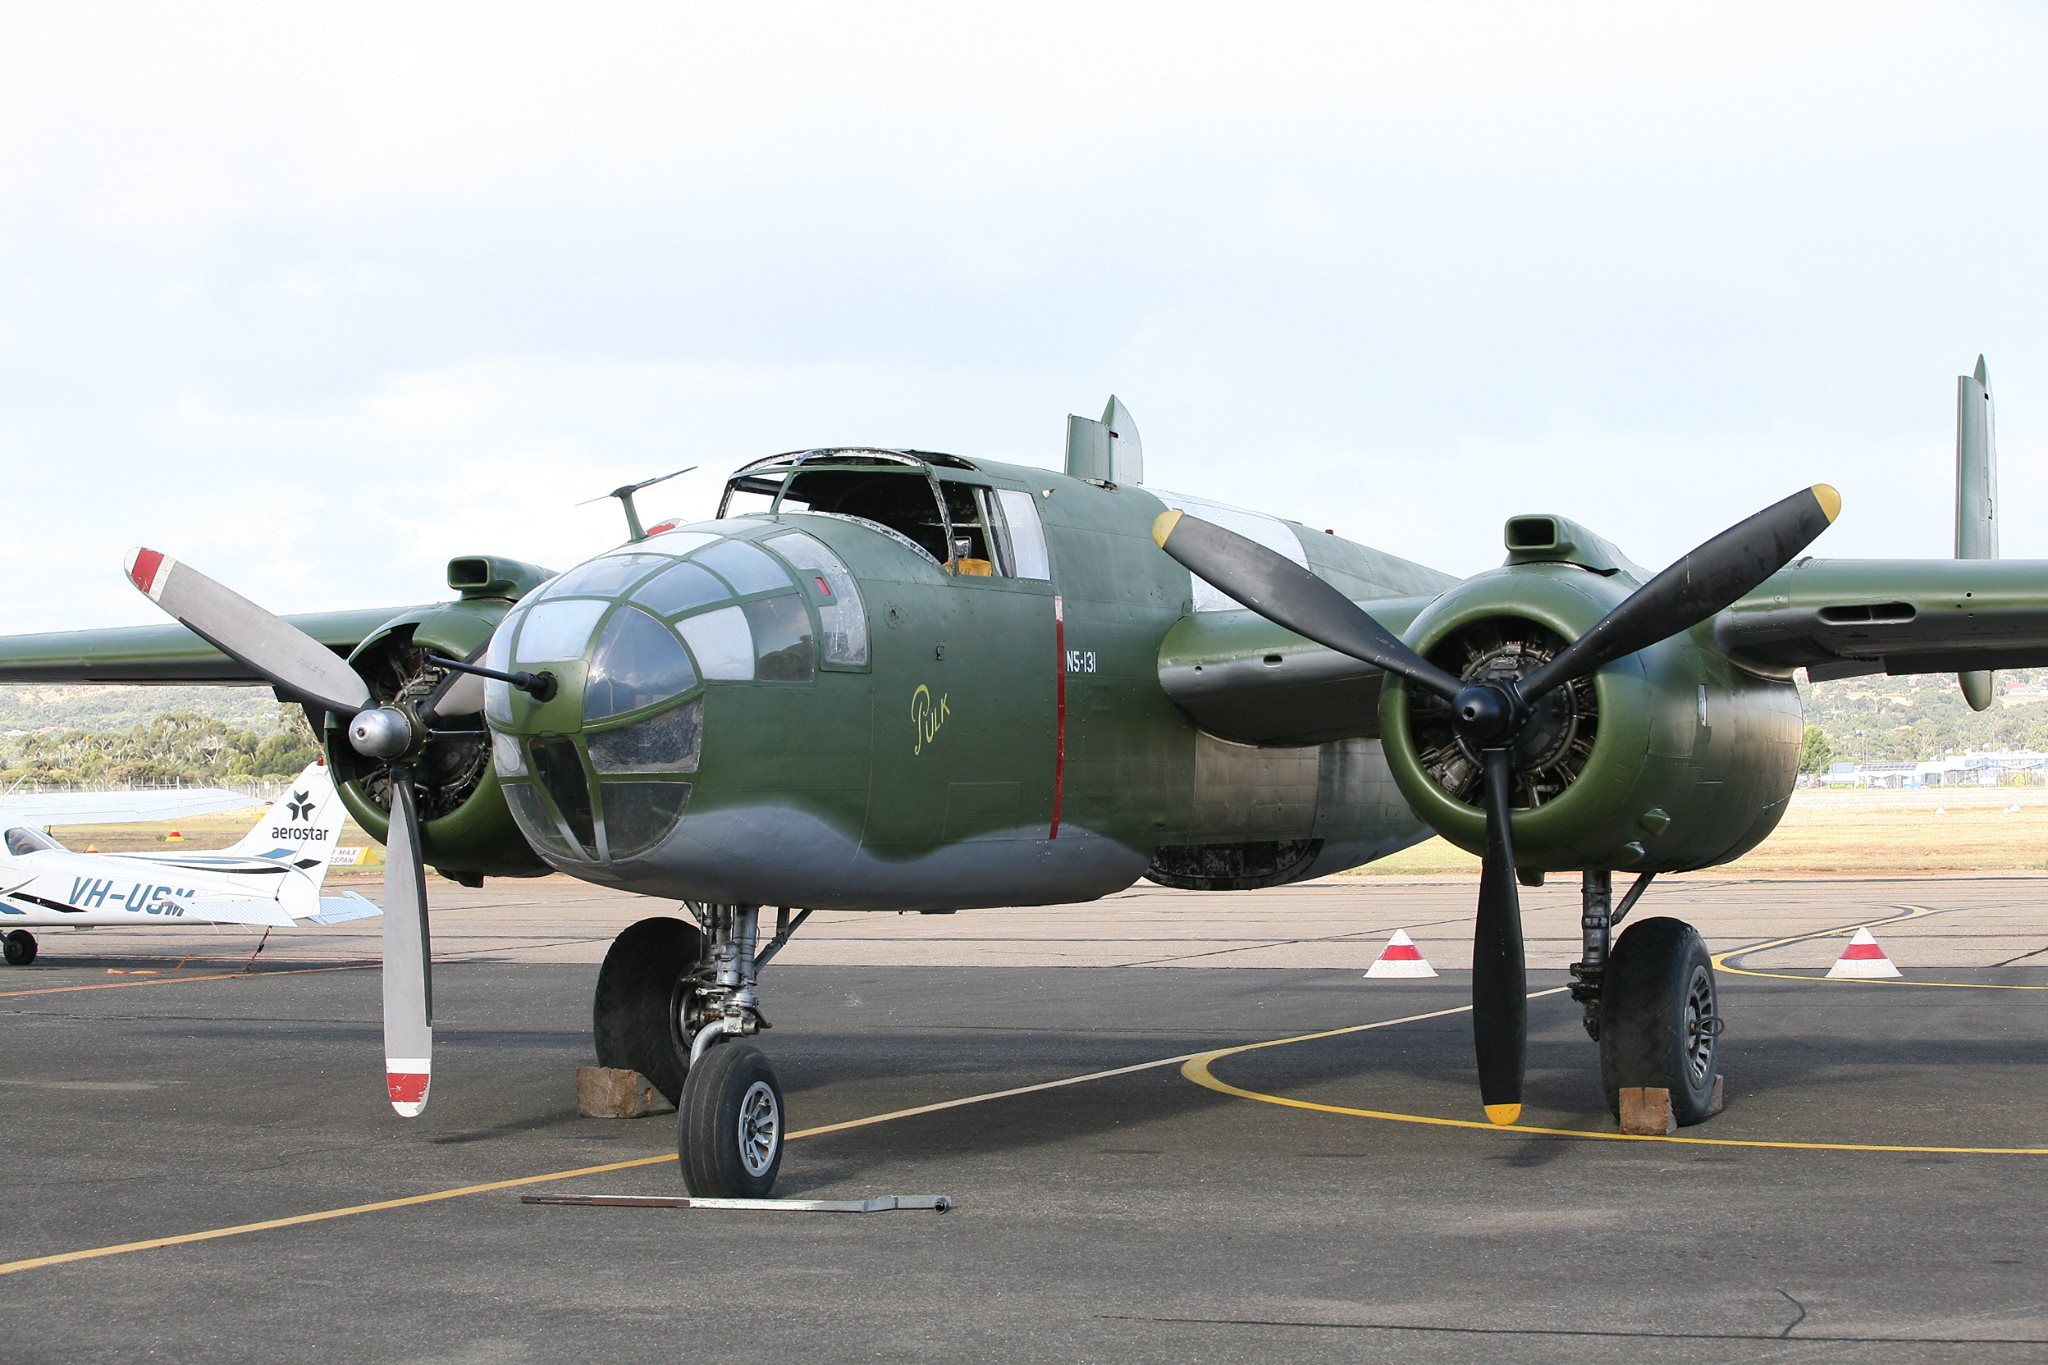 Reevers B-25 at her rollout ceremony in April this year. There is still much work to do, but she has come forwards very quickly from where she once was. (Photo via Reevers)